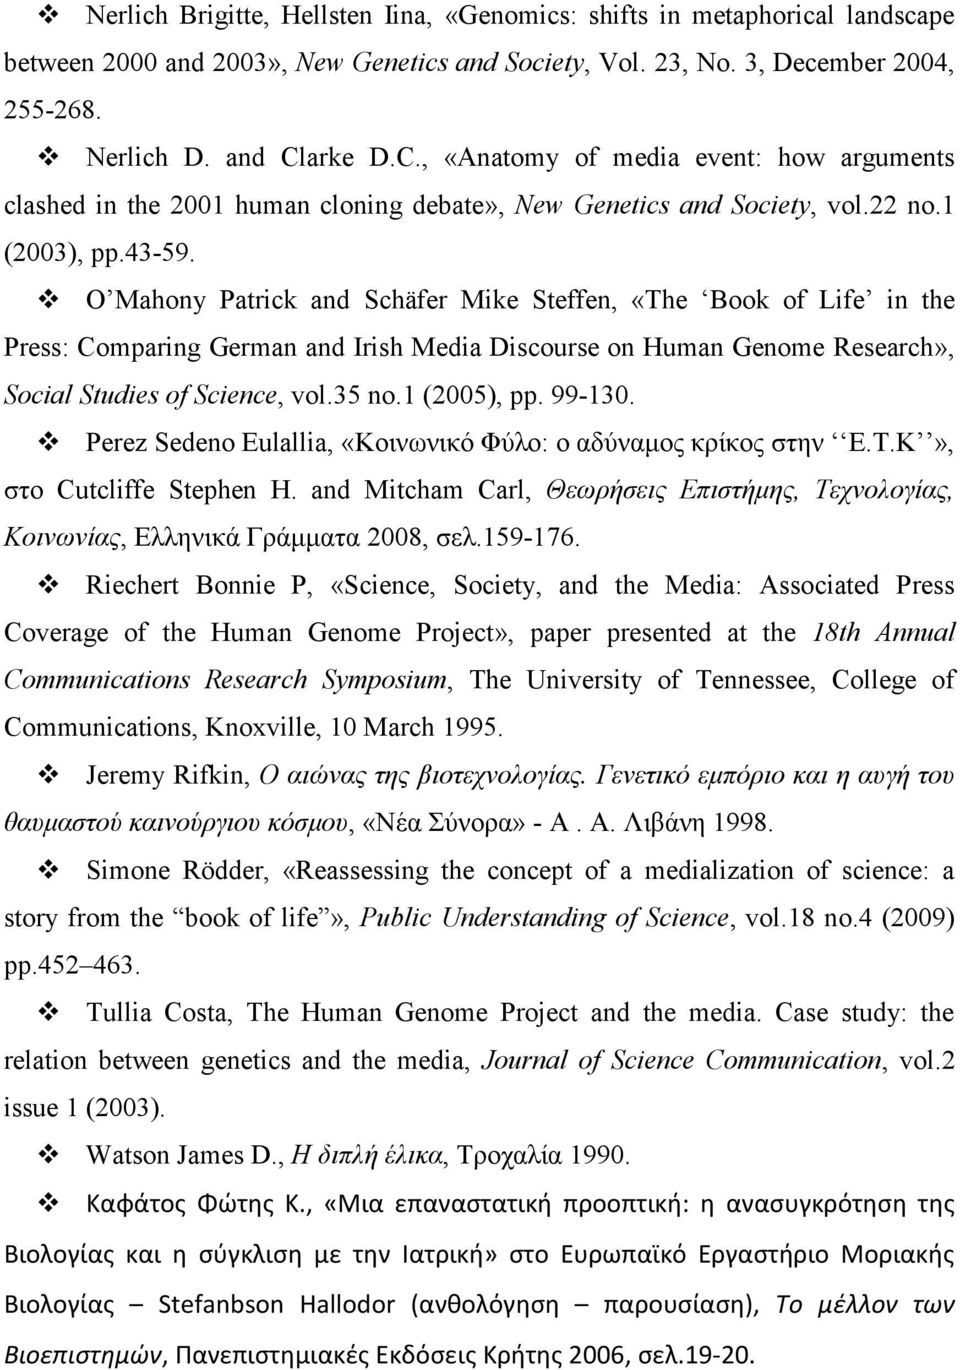 O Mahony Patrick and Schäfer Mike Steffen, «The Book of Life in the Press: Comparing German and Irish Media Discourse on Human Genome Research», Social Studies of Science, vol.35 no.1 (2005), pp.